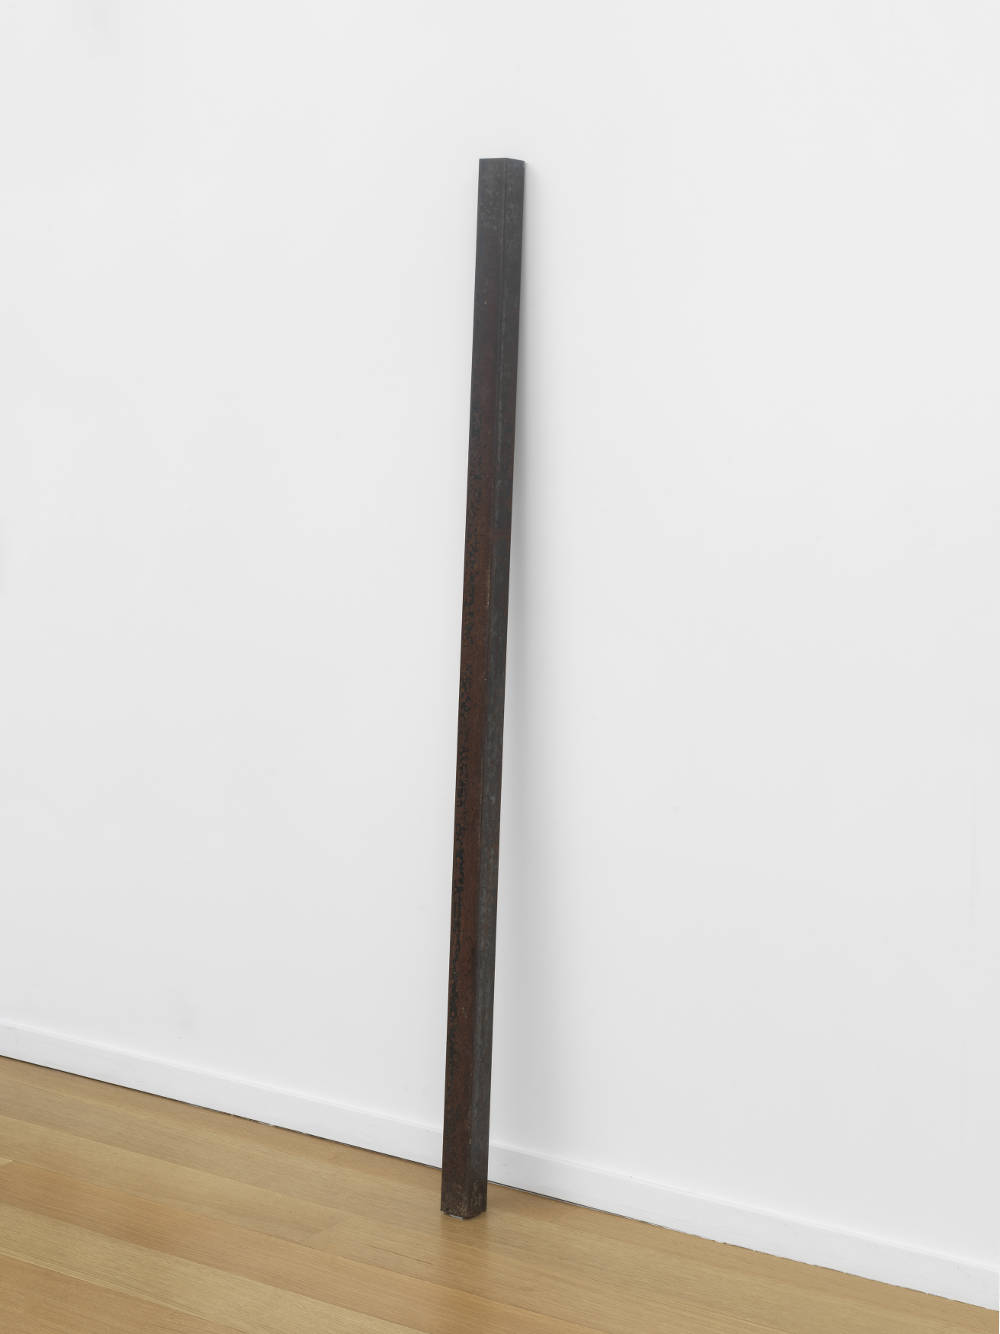 Giovanni Anselmo, Cielo accorciato (Shortened Sky), 1969-1970. Incised iron 140 x 4.6 x 4.6 cm (55 1/8 x 1 13/16 x 1 13/16 in.) Courtesy the artist and Simon Lee Gallery, London